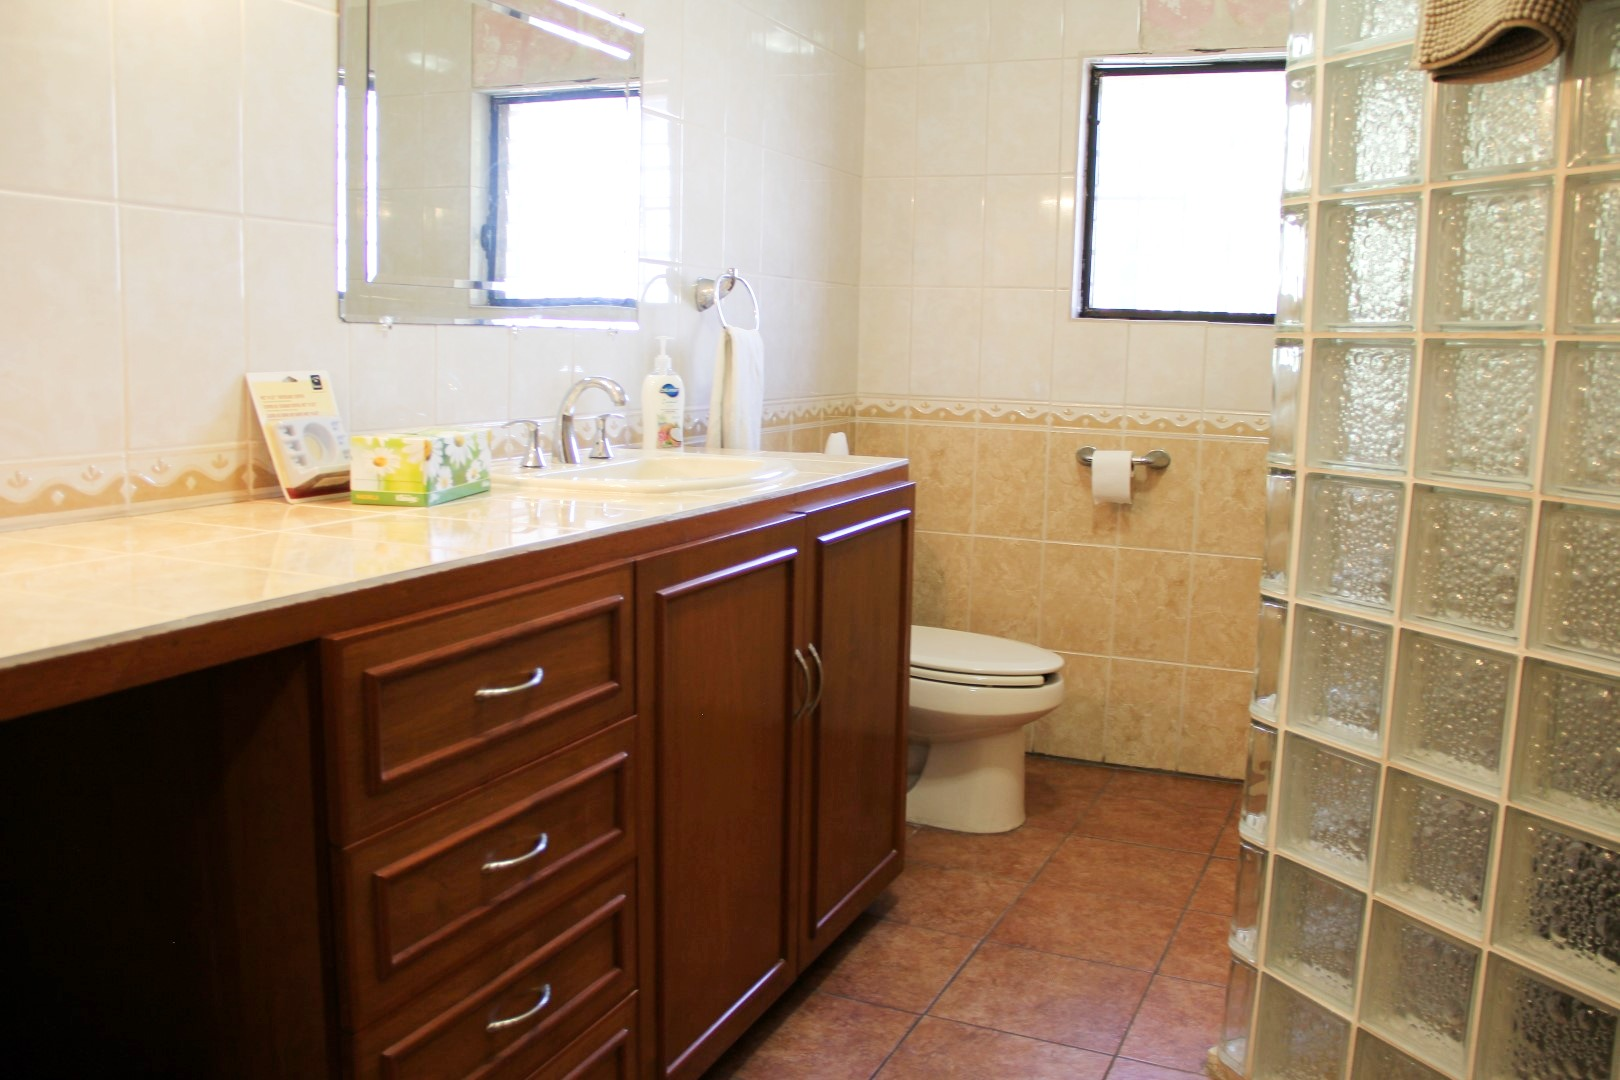 Master ensuite with shower and large vanity.